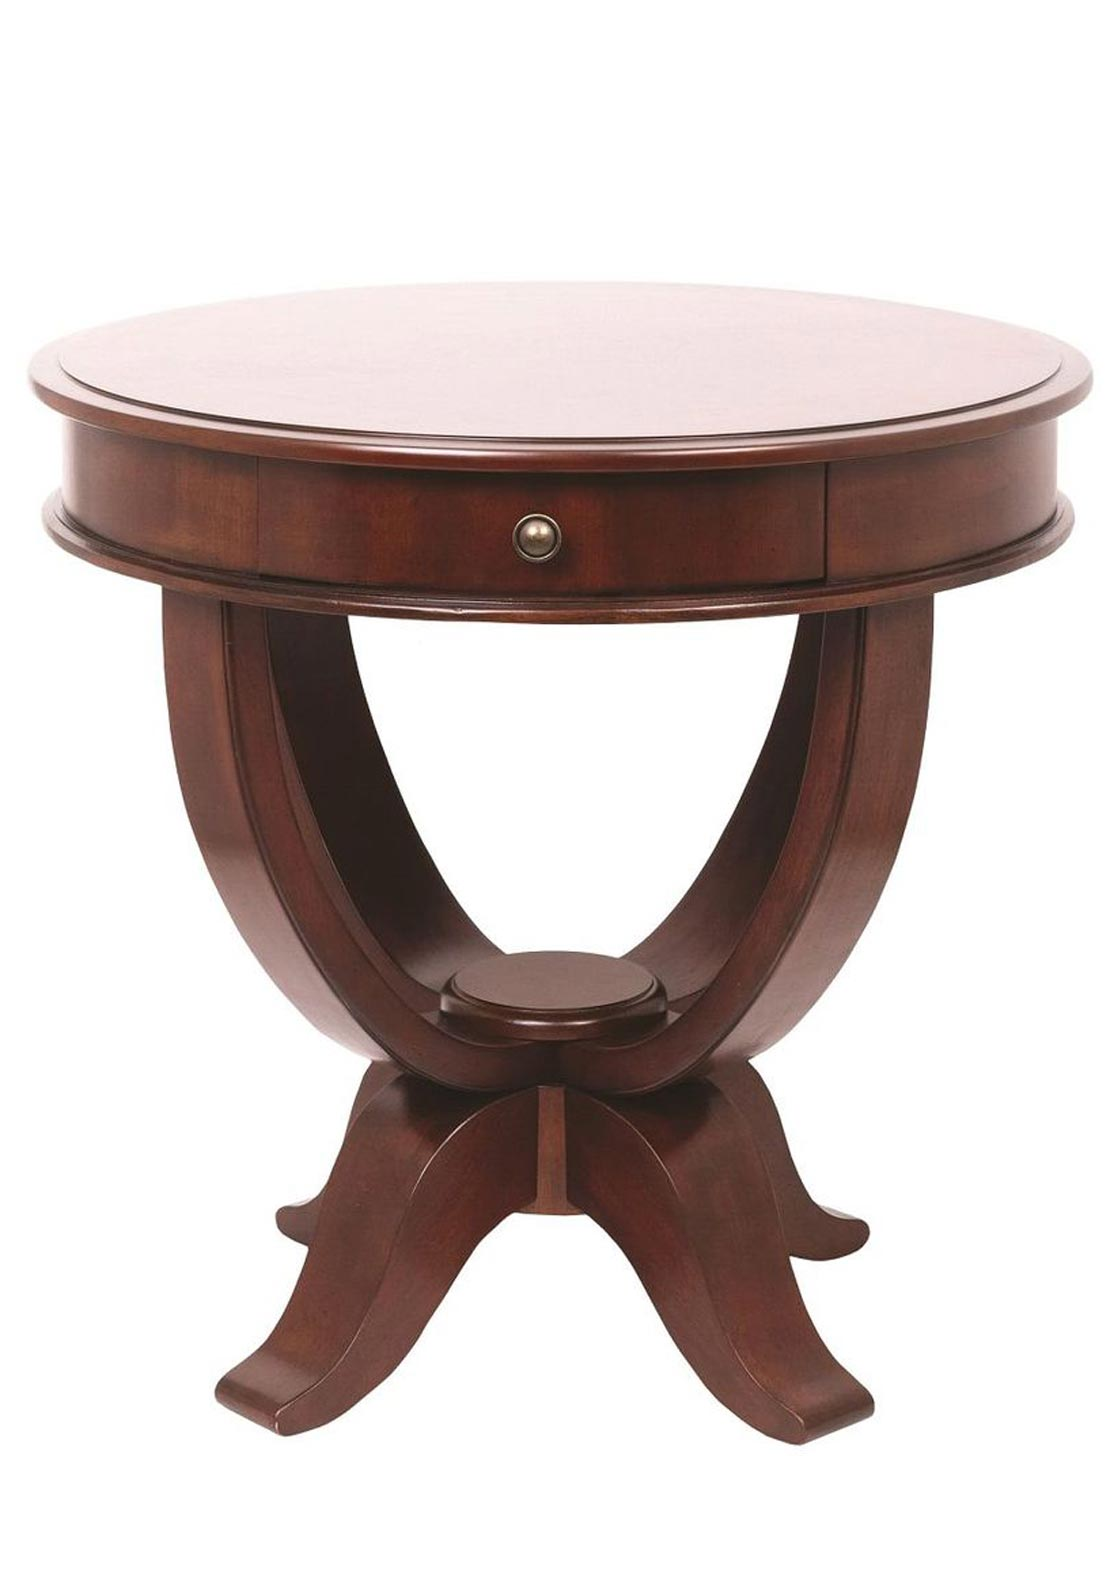 "Mindy Brownes Round Occasional Table Diameter 28"" X Height 27"""